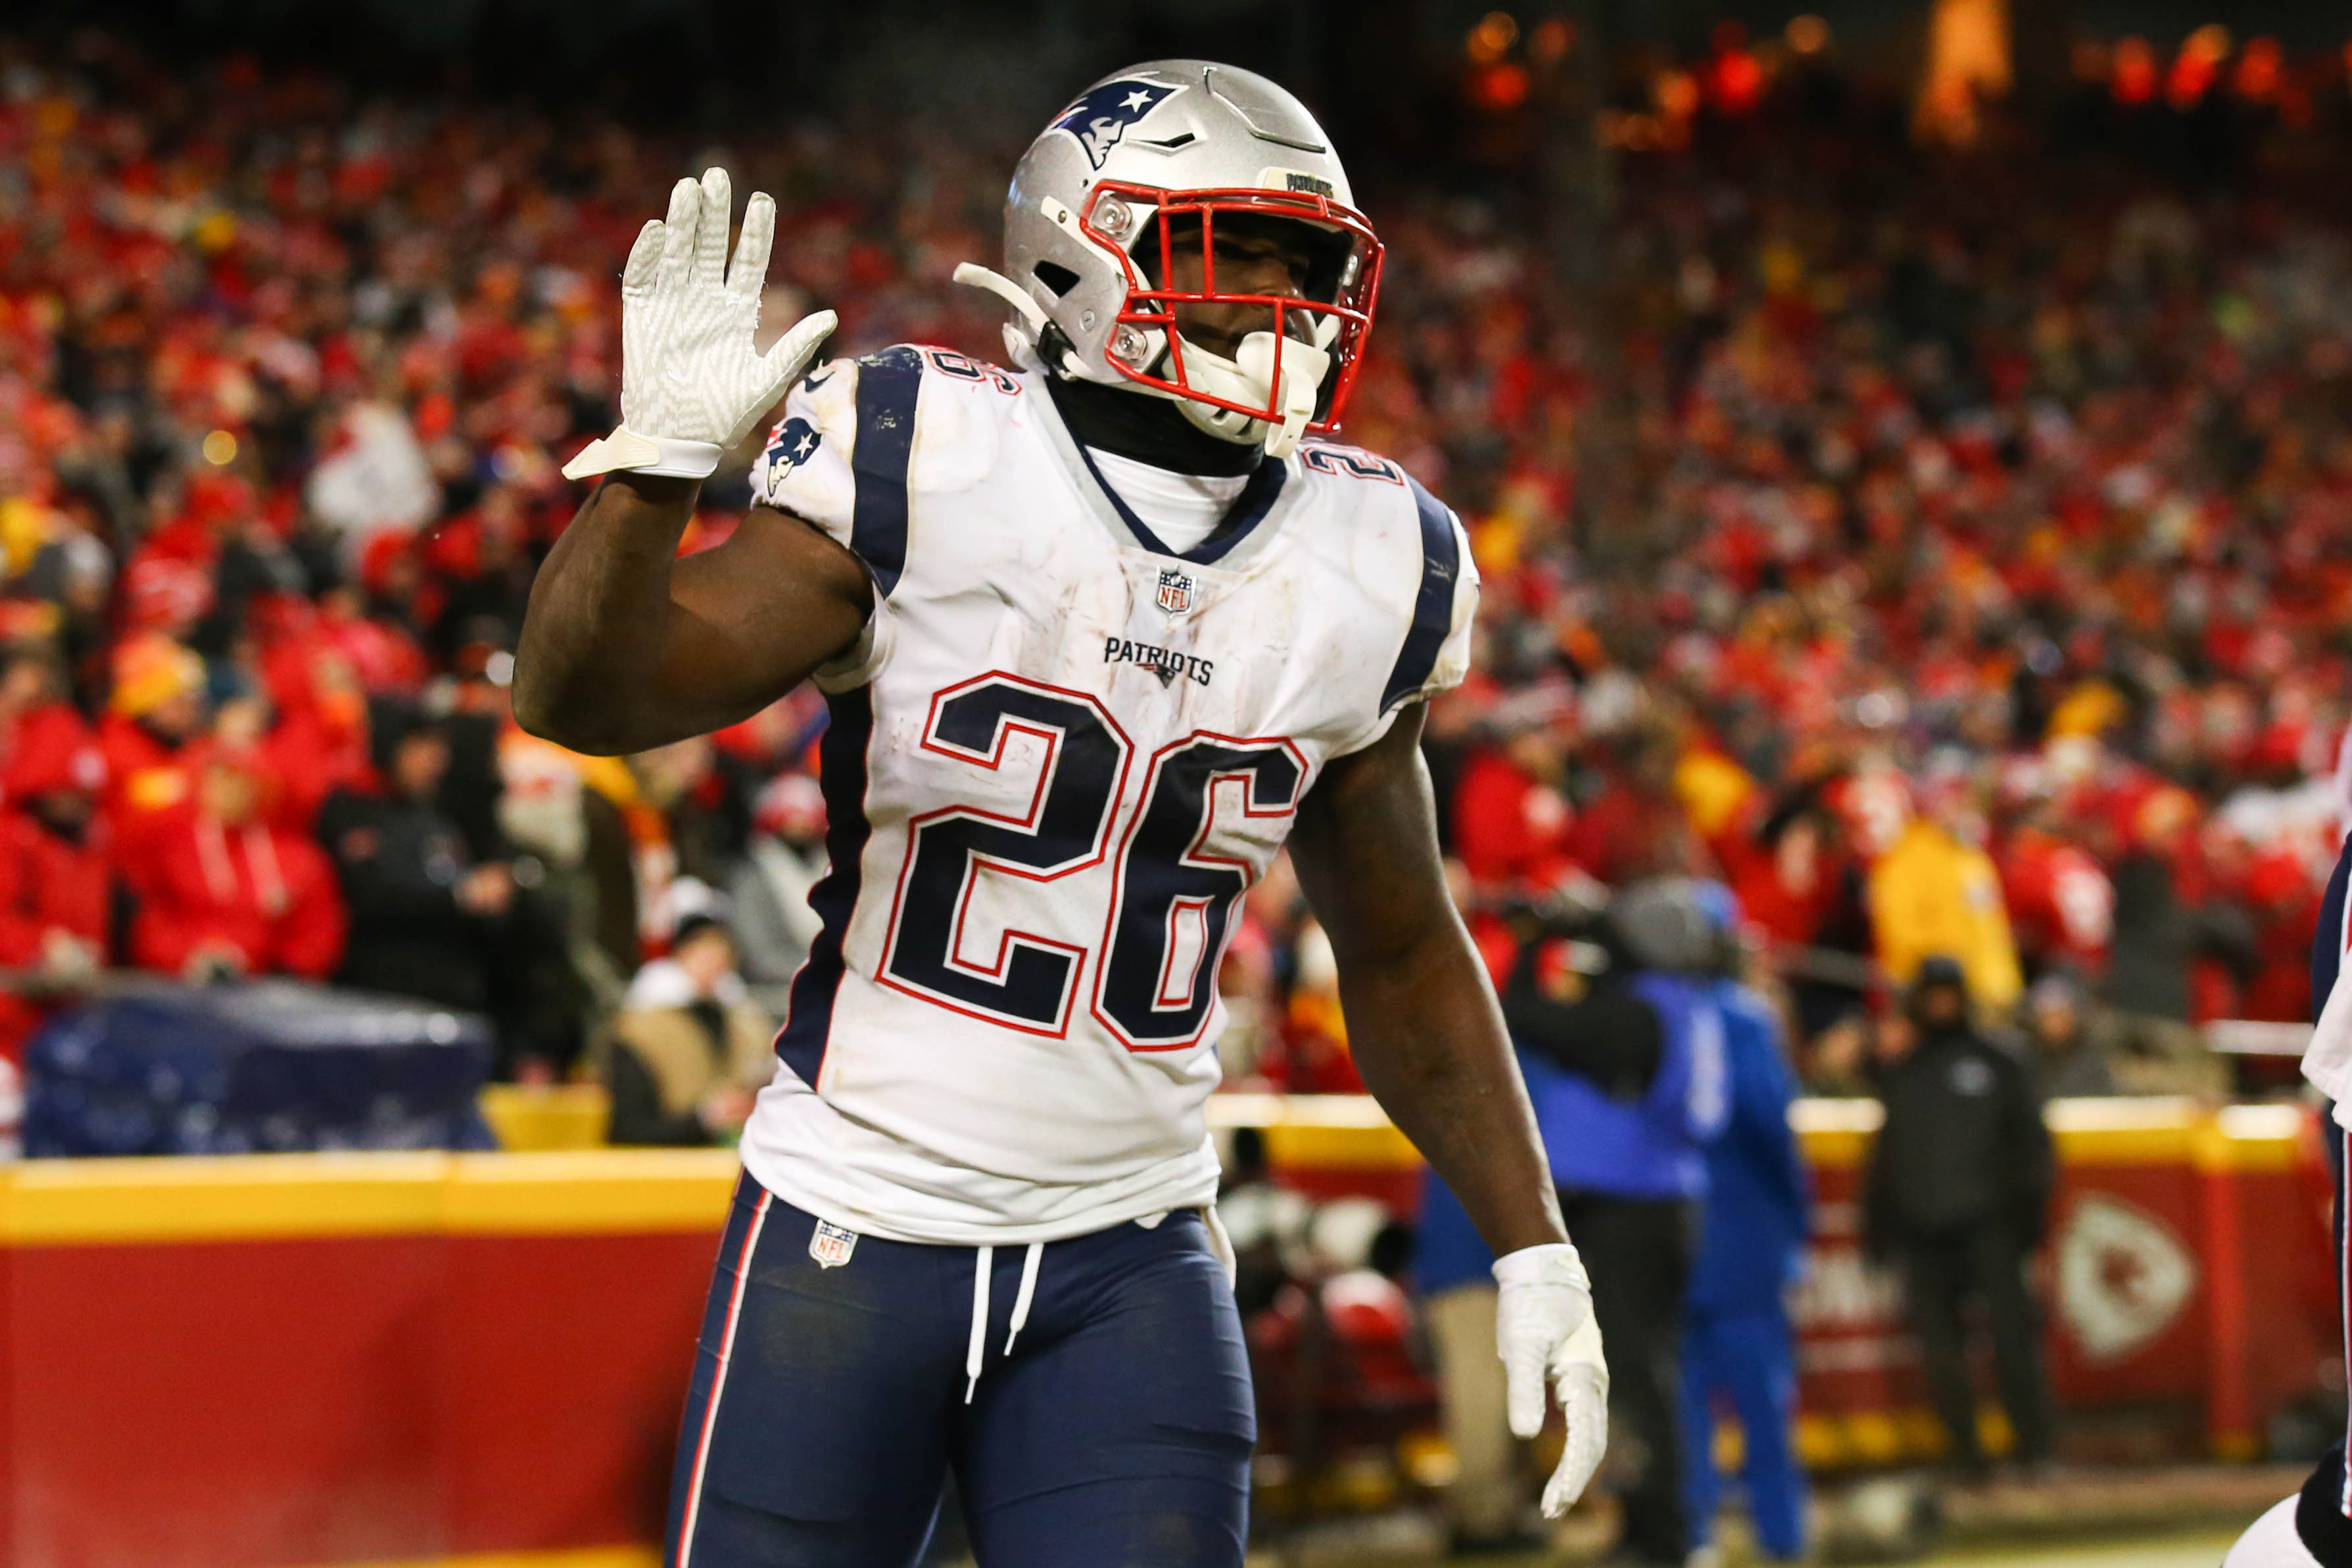 Patriots. vs. Chiefs 2019 results: Recap & more from wild AFC Championship